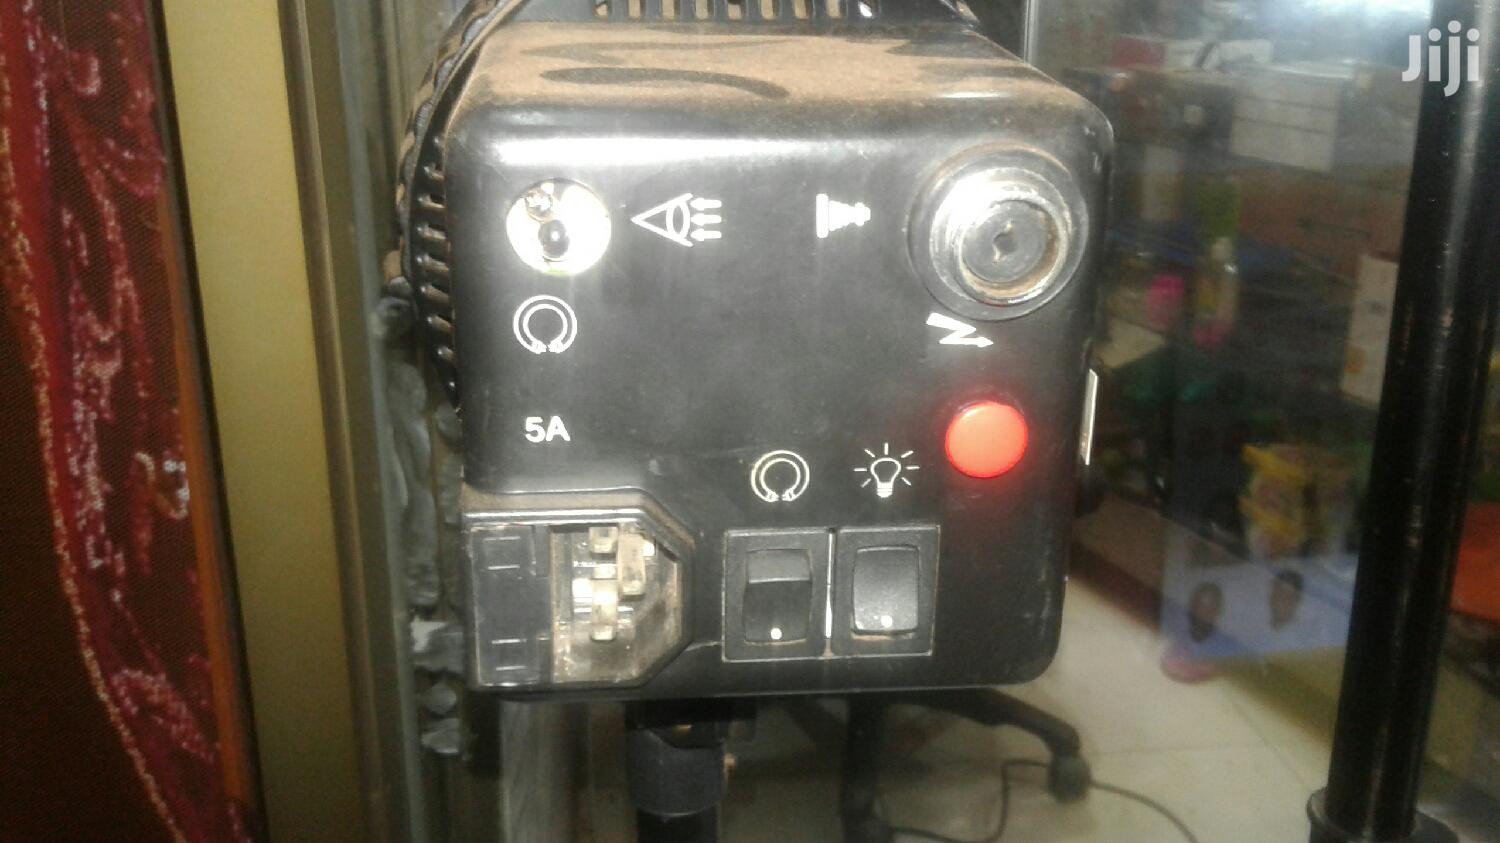 Used Studio Lights Simpex 300 | Photo & Video Cameras for sale in Kampala, Central Region, Uganda